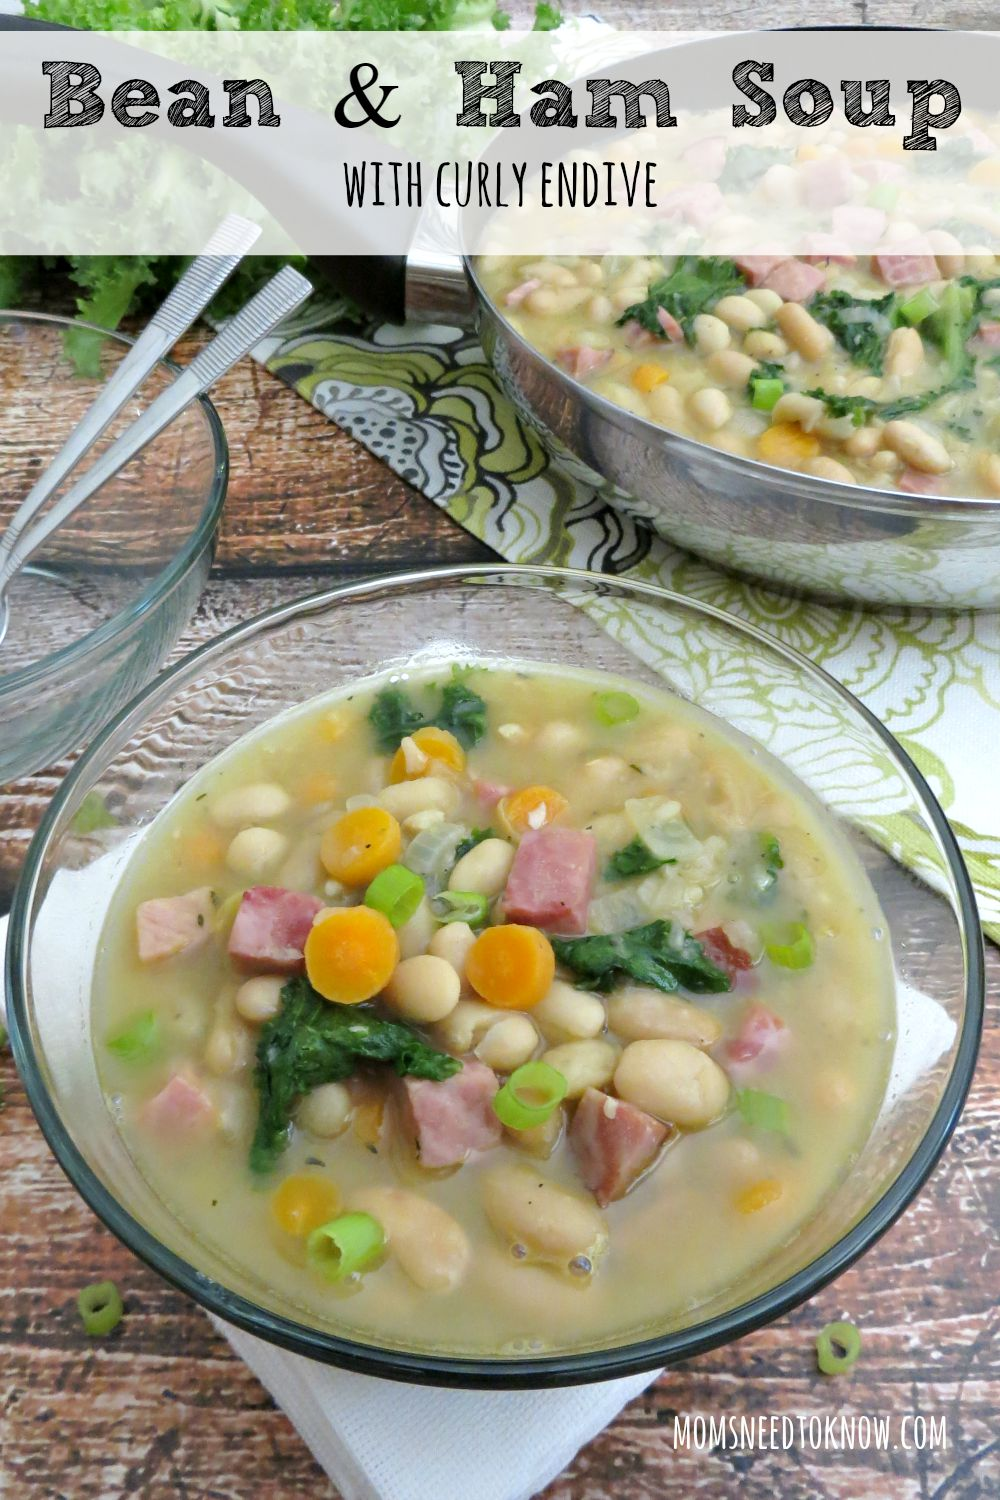 This ham and bean soup recipe gets an extra paunch of flavor with the addition of some curly endive . Pair it with a crusty bread for a complete meal!